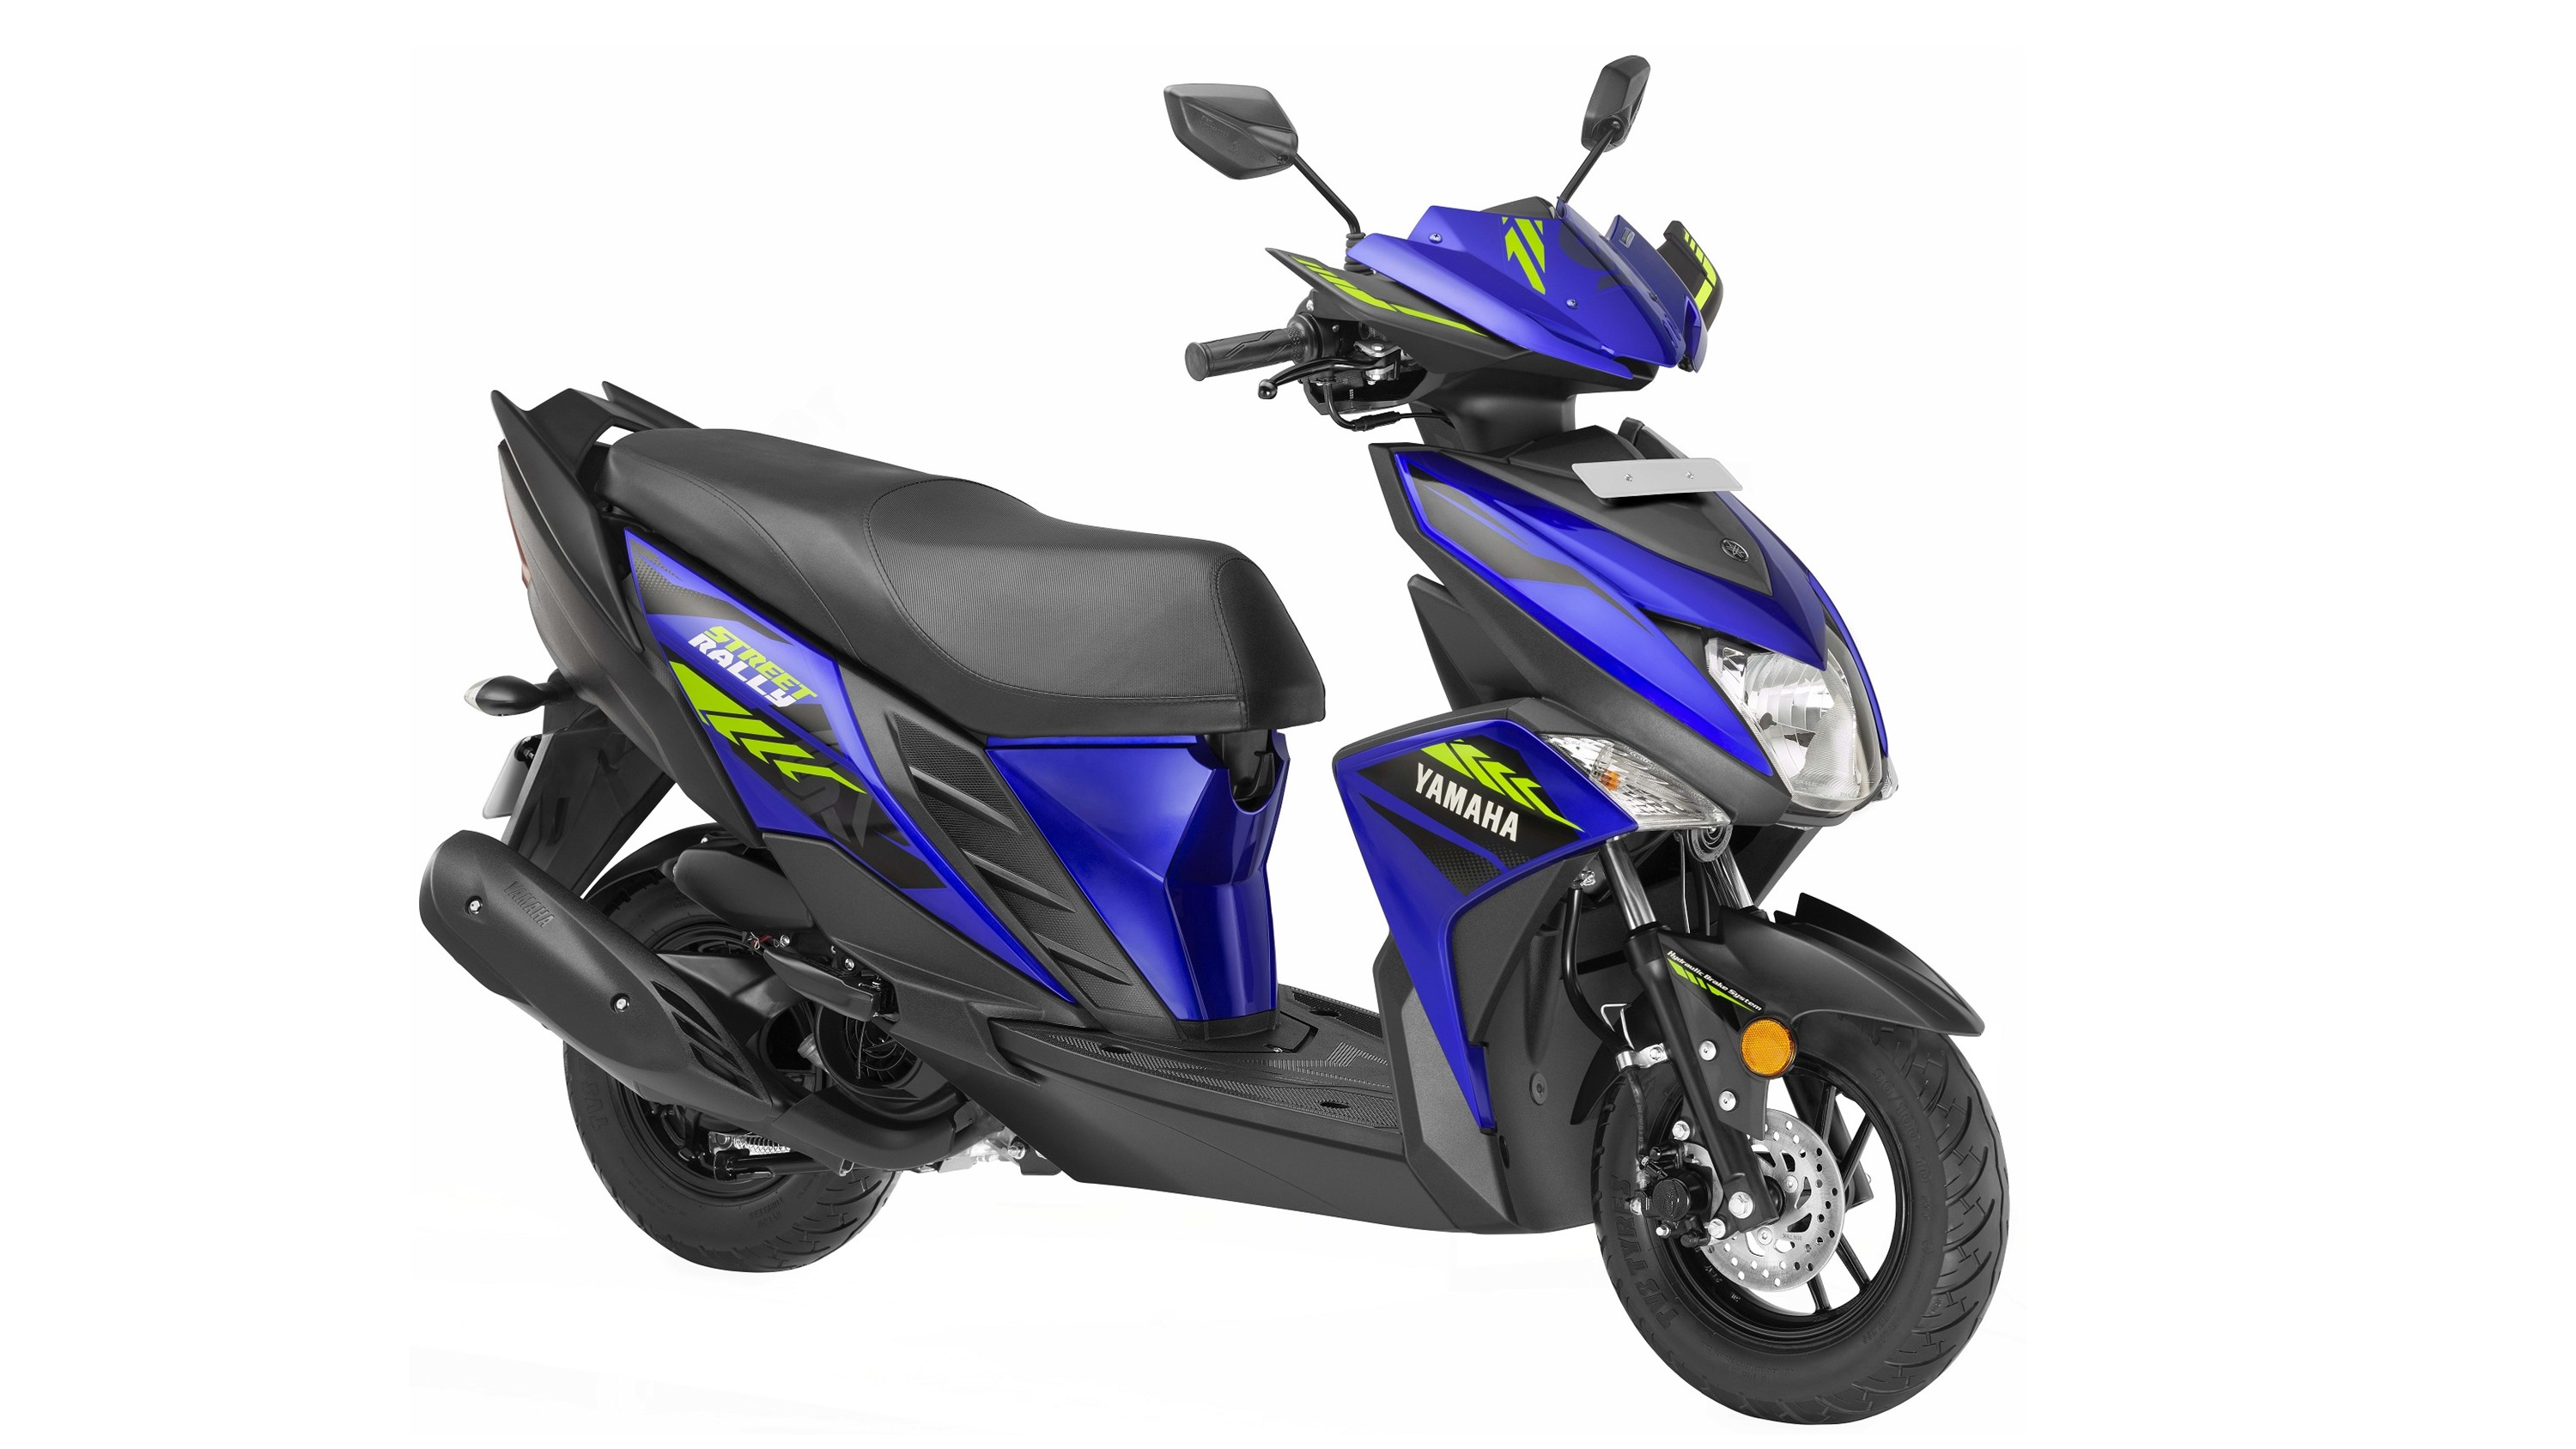 Yamaha Cygnus Ray ZR 'Street Rally' Edition colour option blue